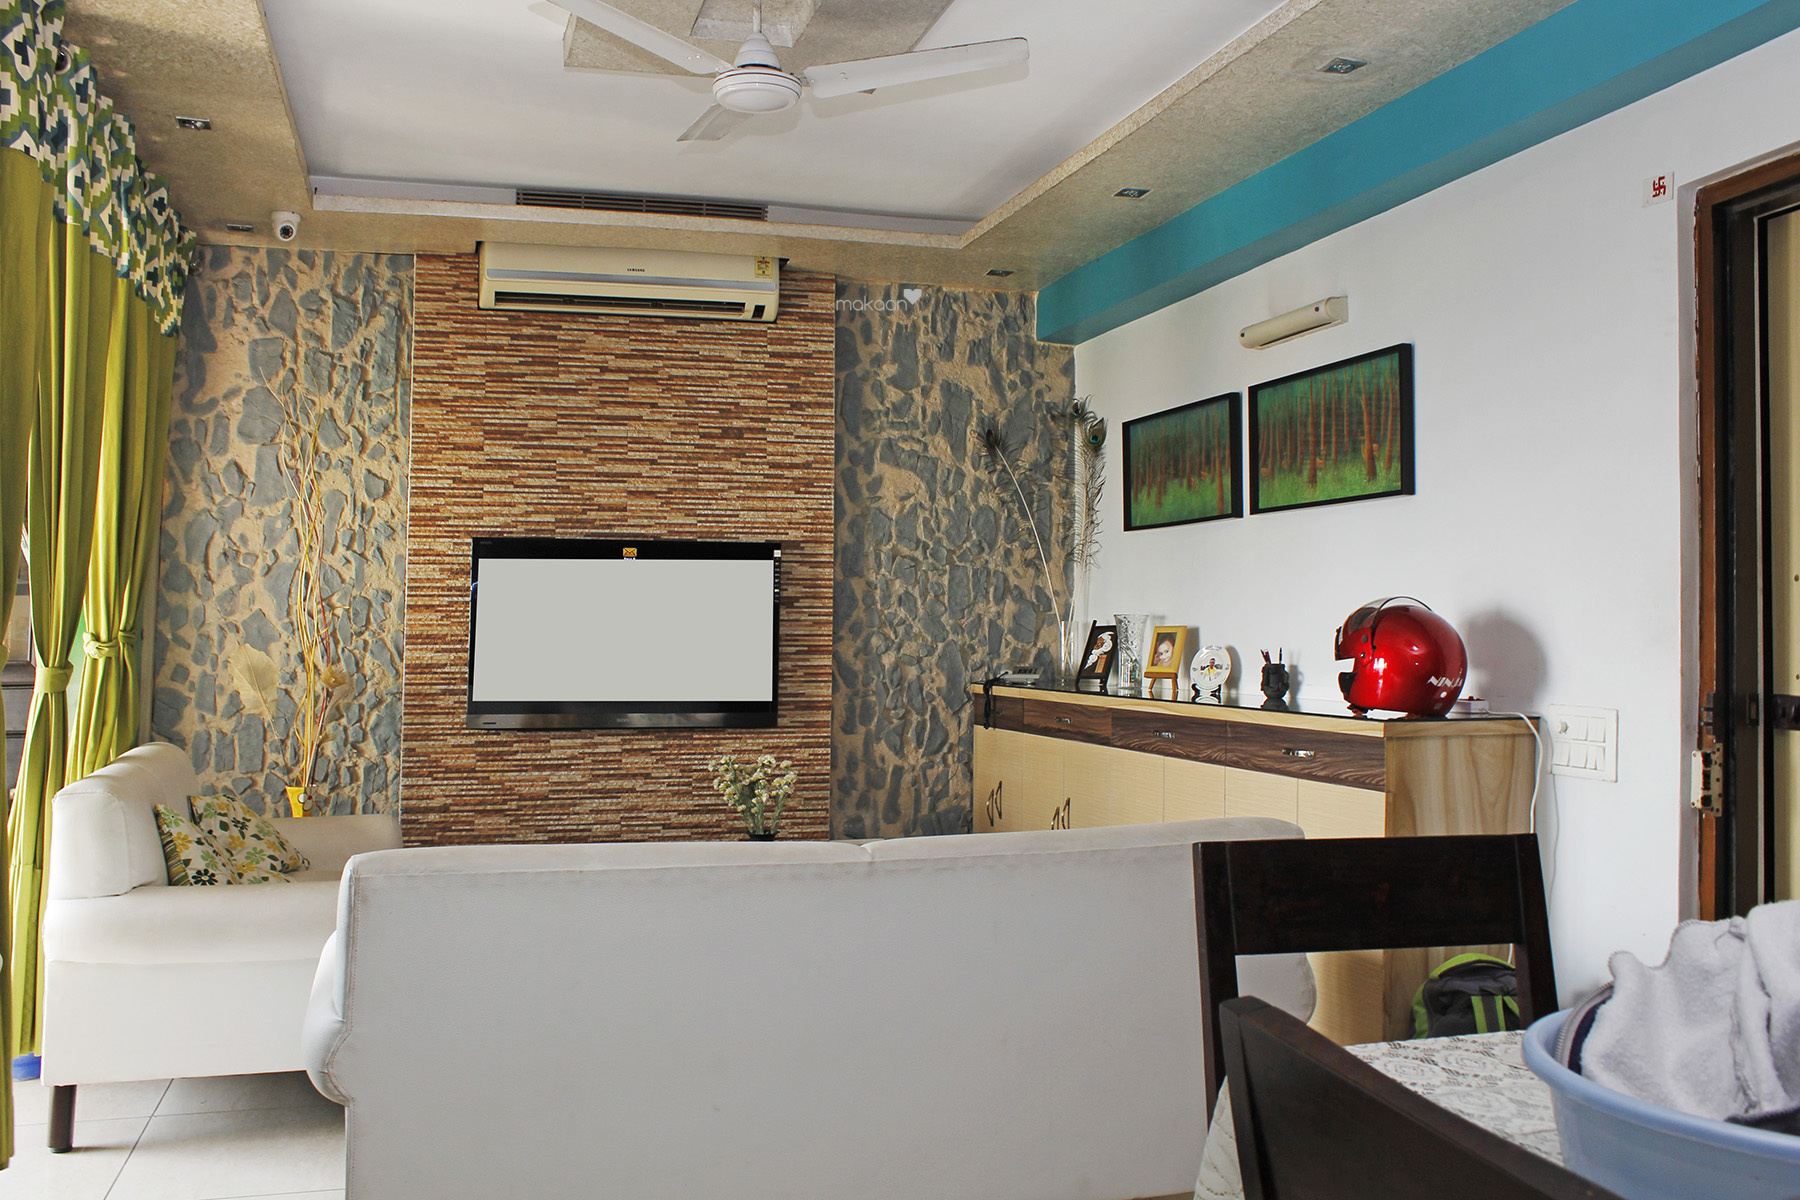 1435 sq ft 3BHK 3BHK+2T (1,435 sq ft) Property By Proptiger In City South, Tollygunge